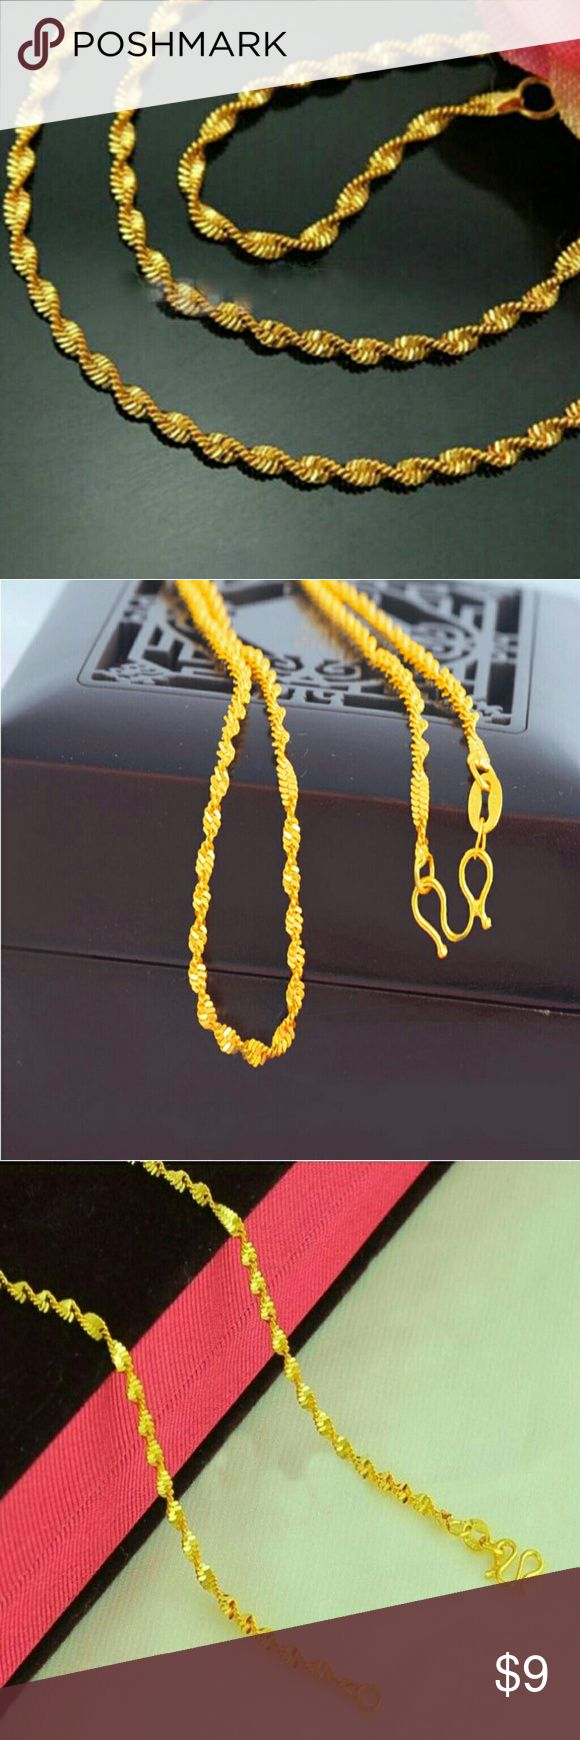 """16"""" Solid 24K Gold Water Wave Chain This 16"""" Wave Chain Necklace has a hook clasp and is super easy to both put on and take off at night. The solid 24K Gold design is the ultimate in luster and luxury. A must have for any collection! Jewelry Necklaces"""